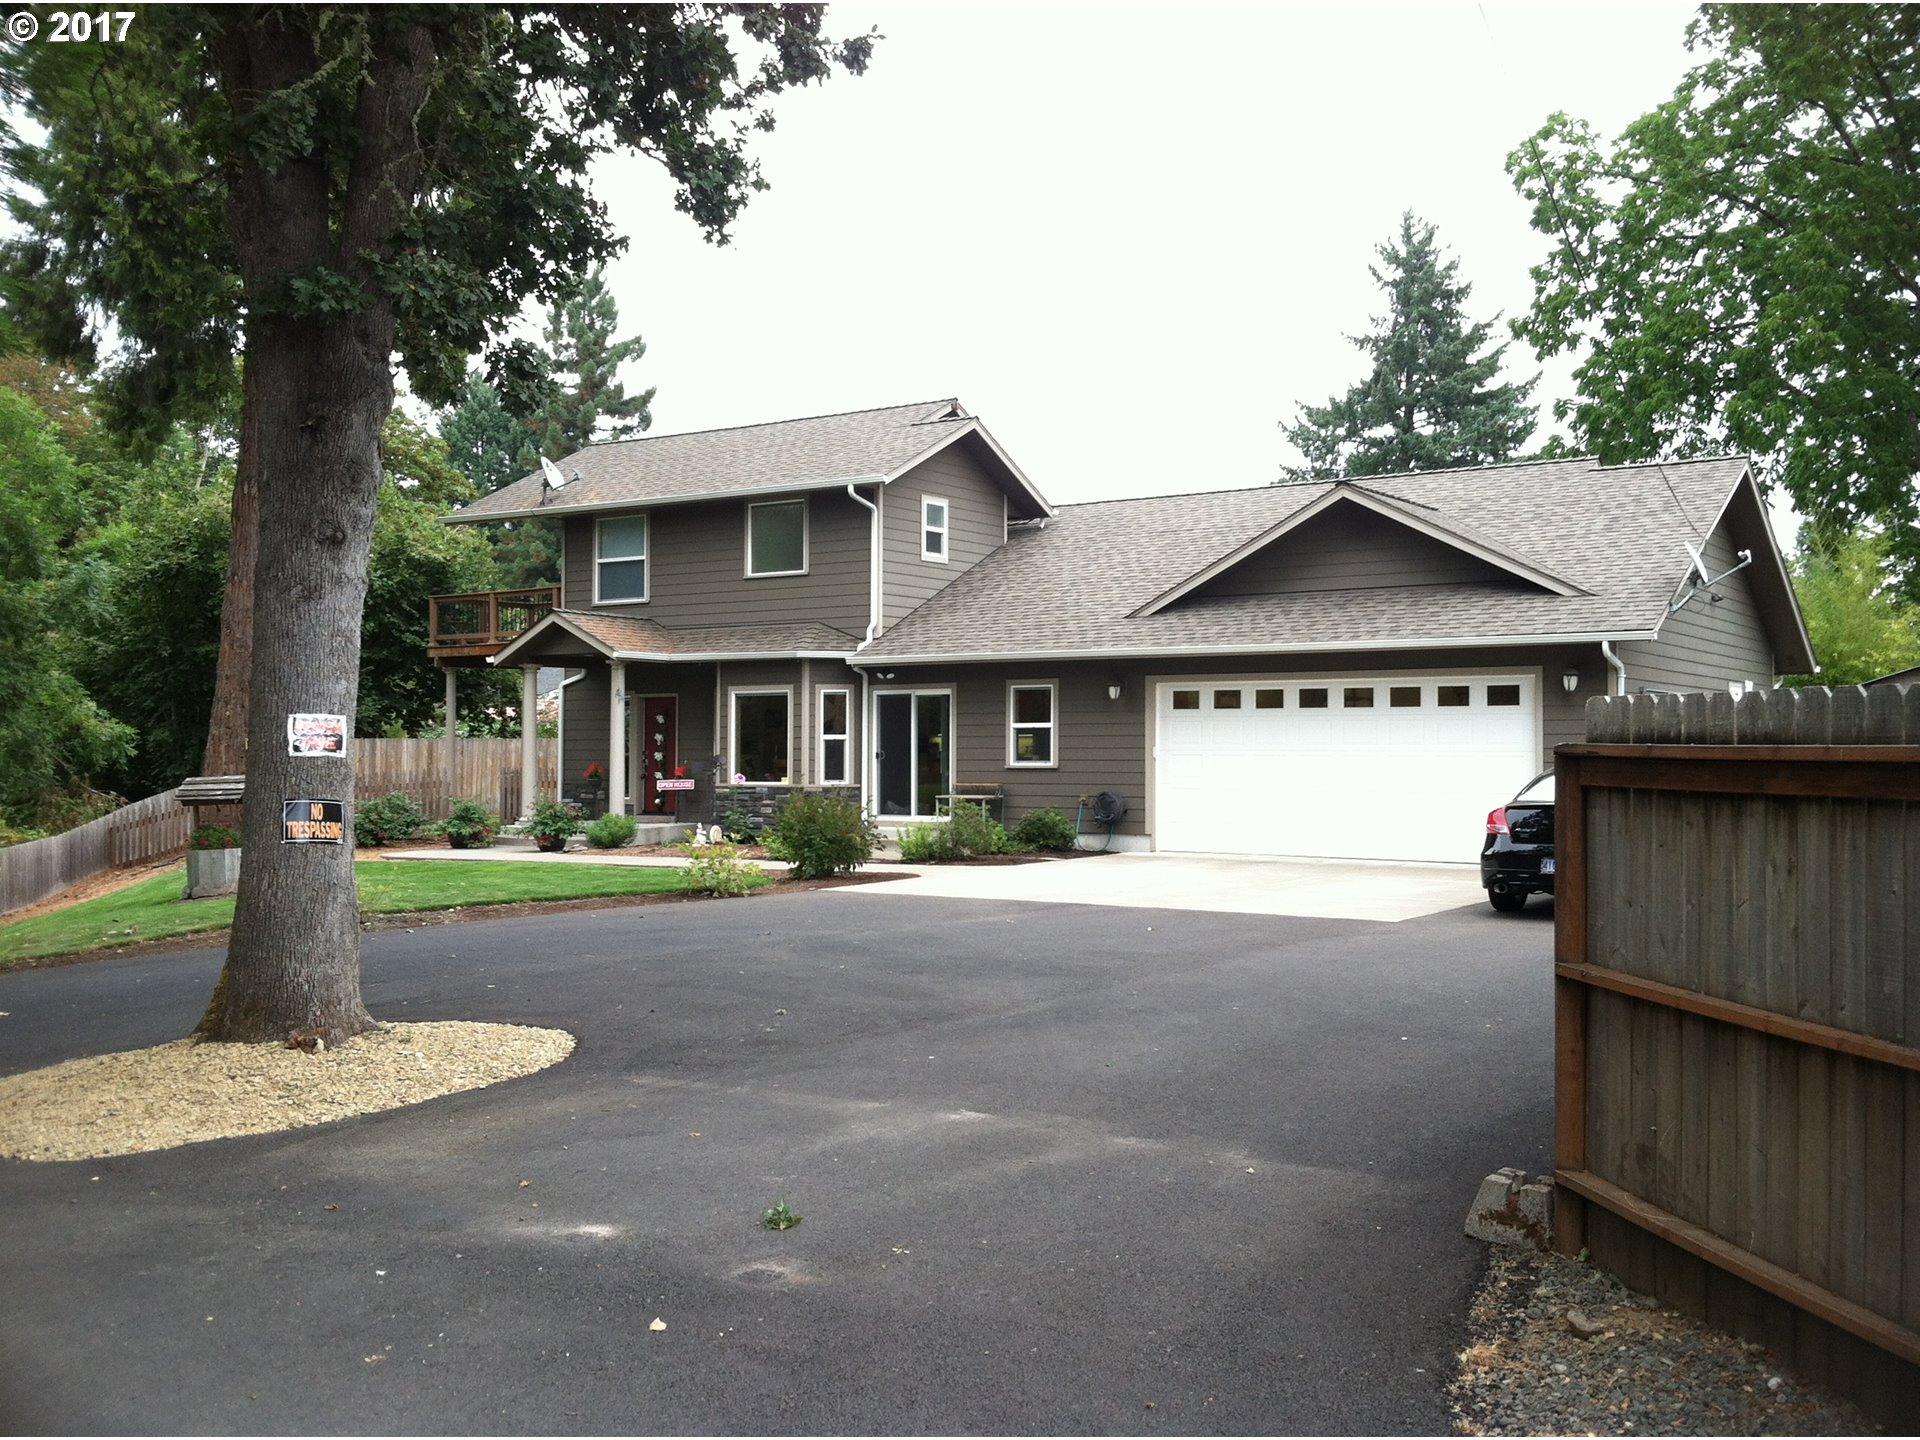 602 N 8TH ST, Cottage Grove OR 97424